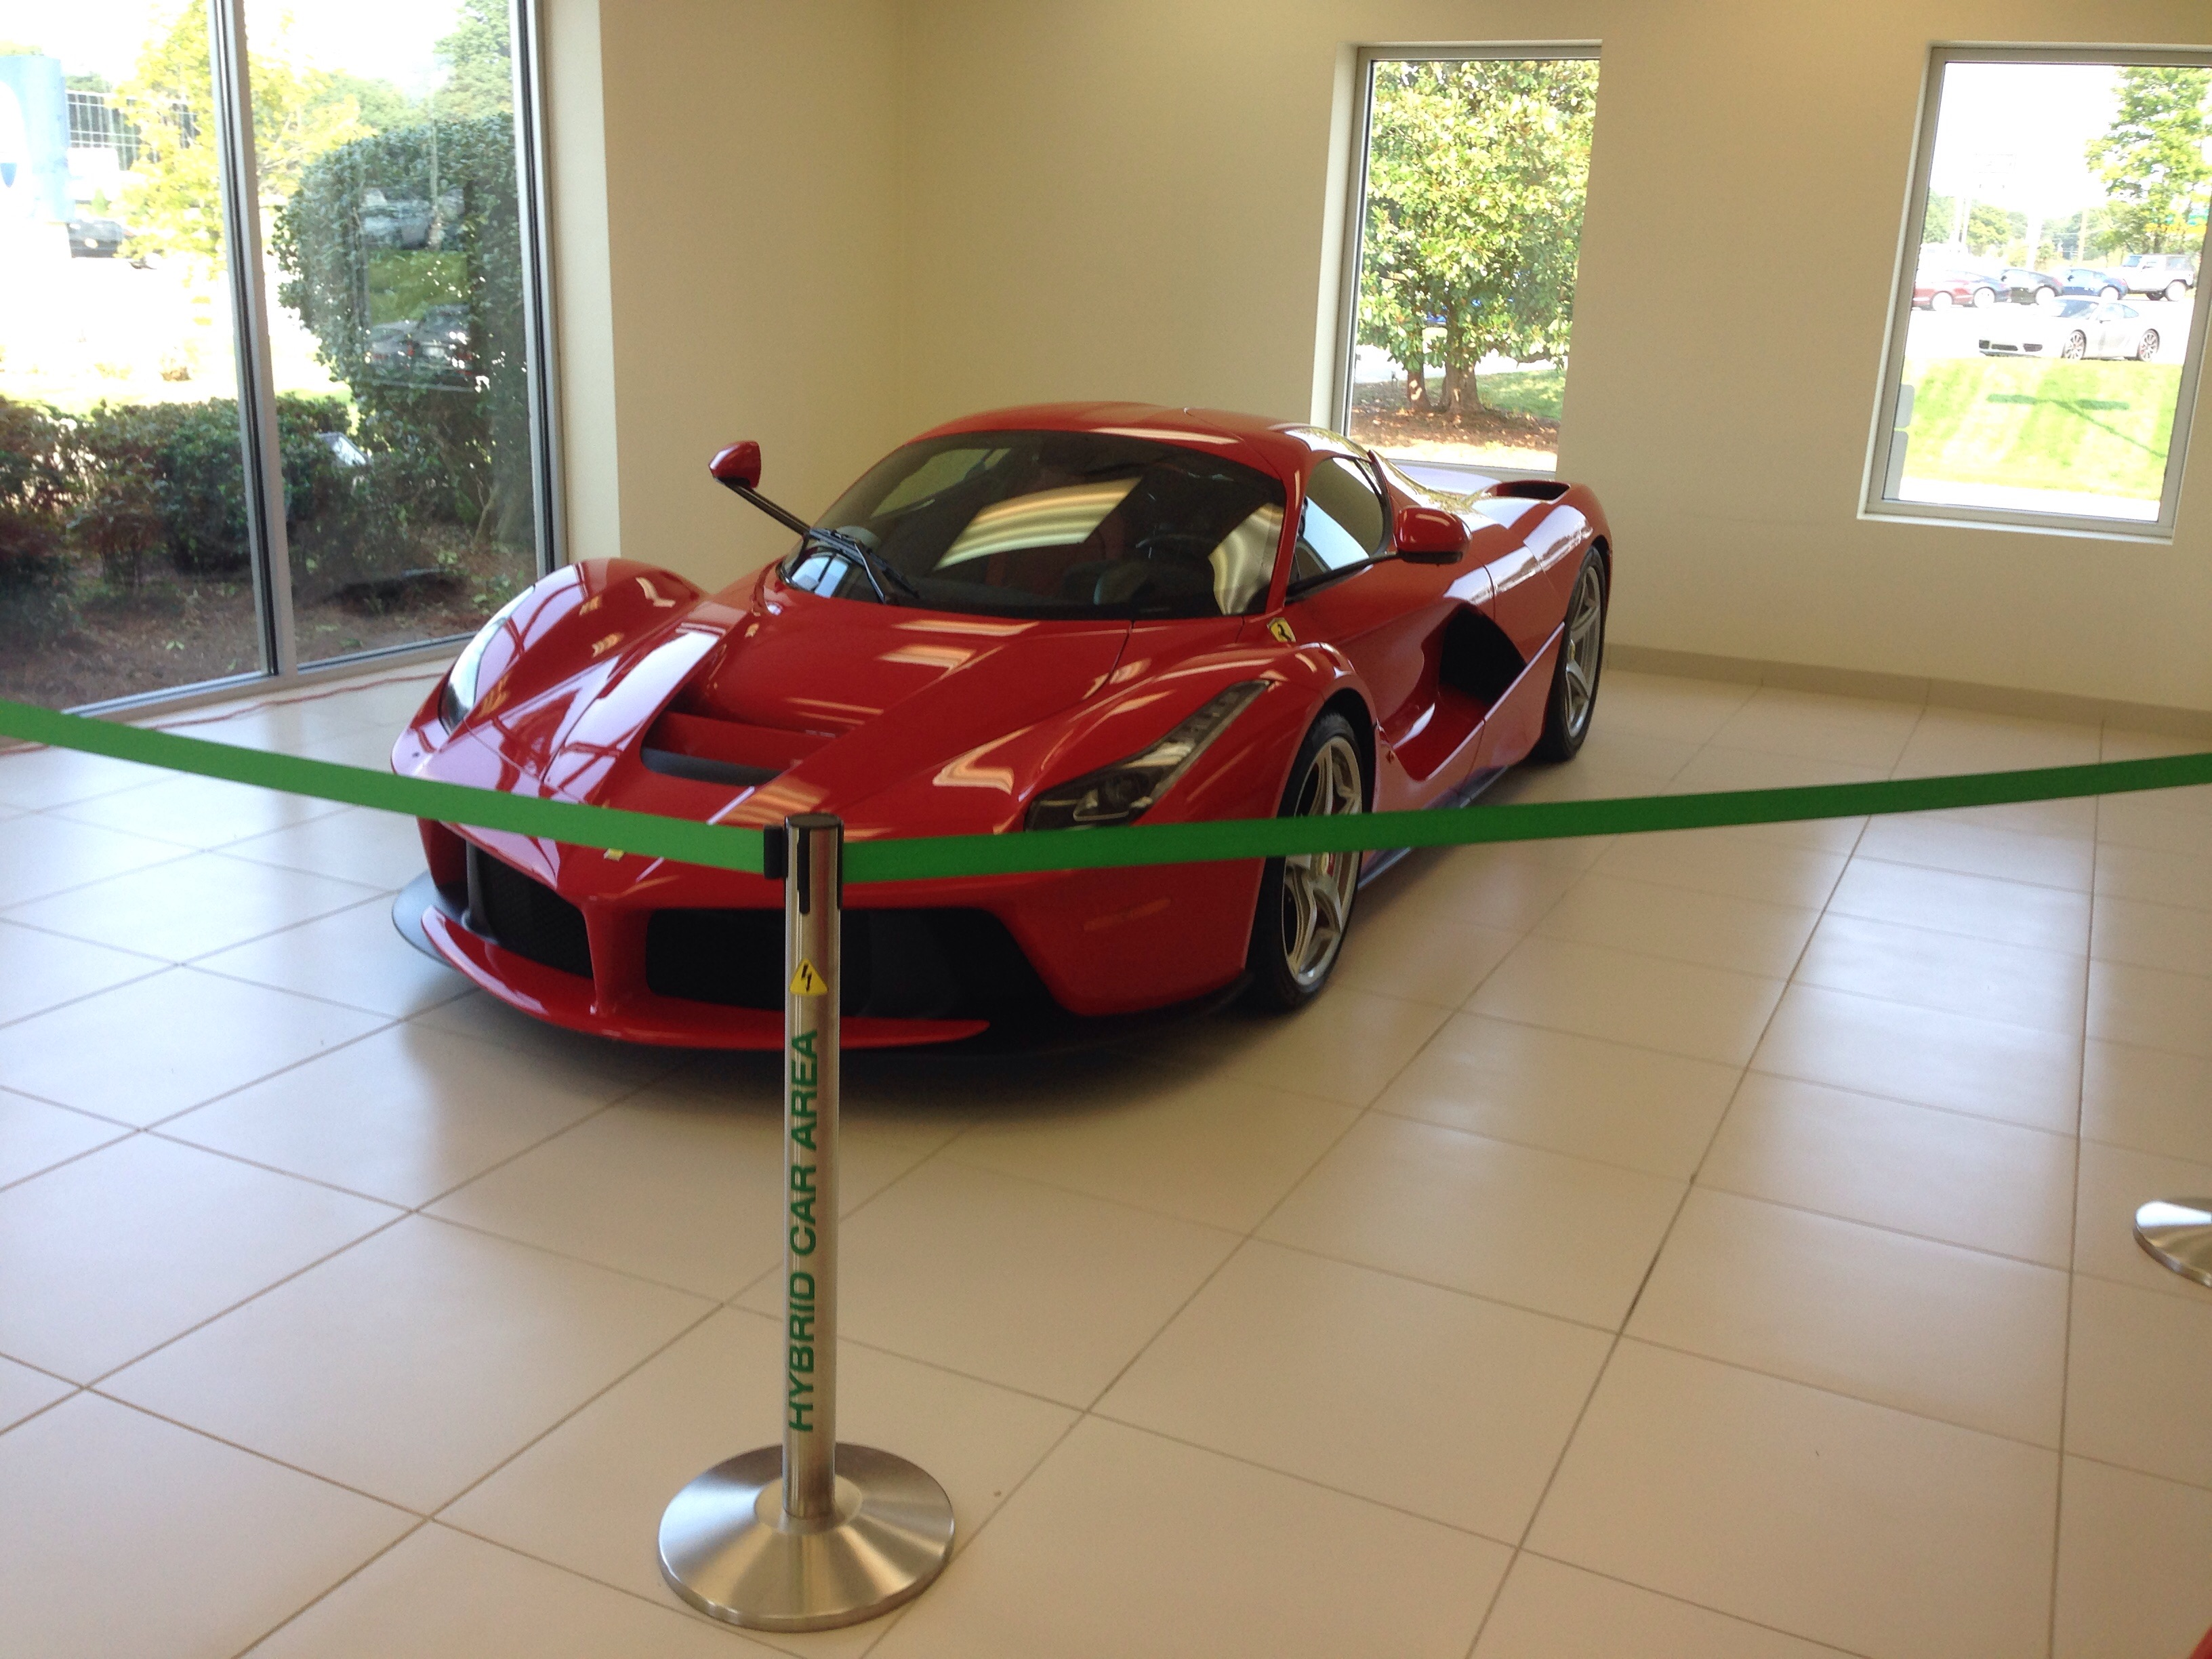 Supercar Dealership Near Me >> I Went To The Local Supercar Dealership I Saw A Laferrari For The